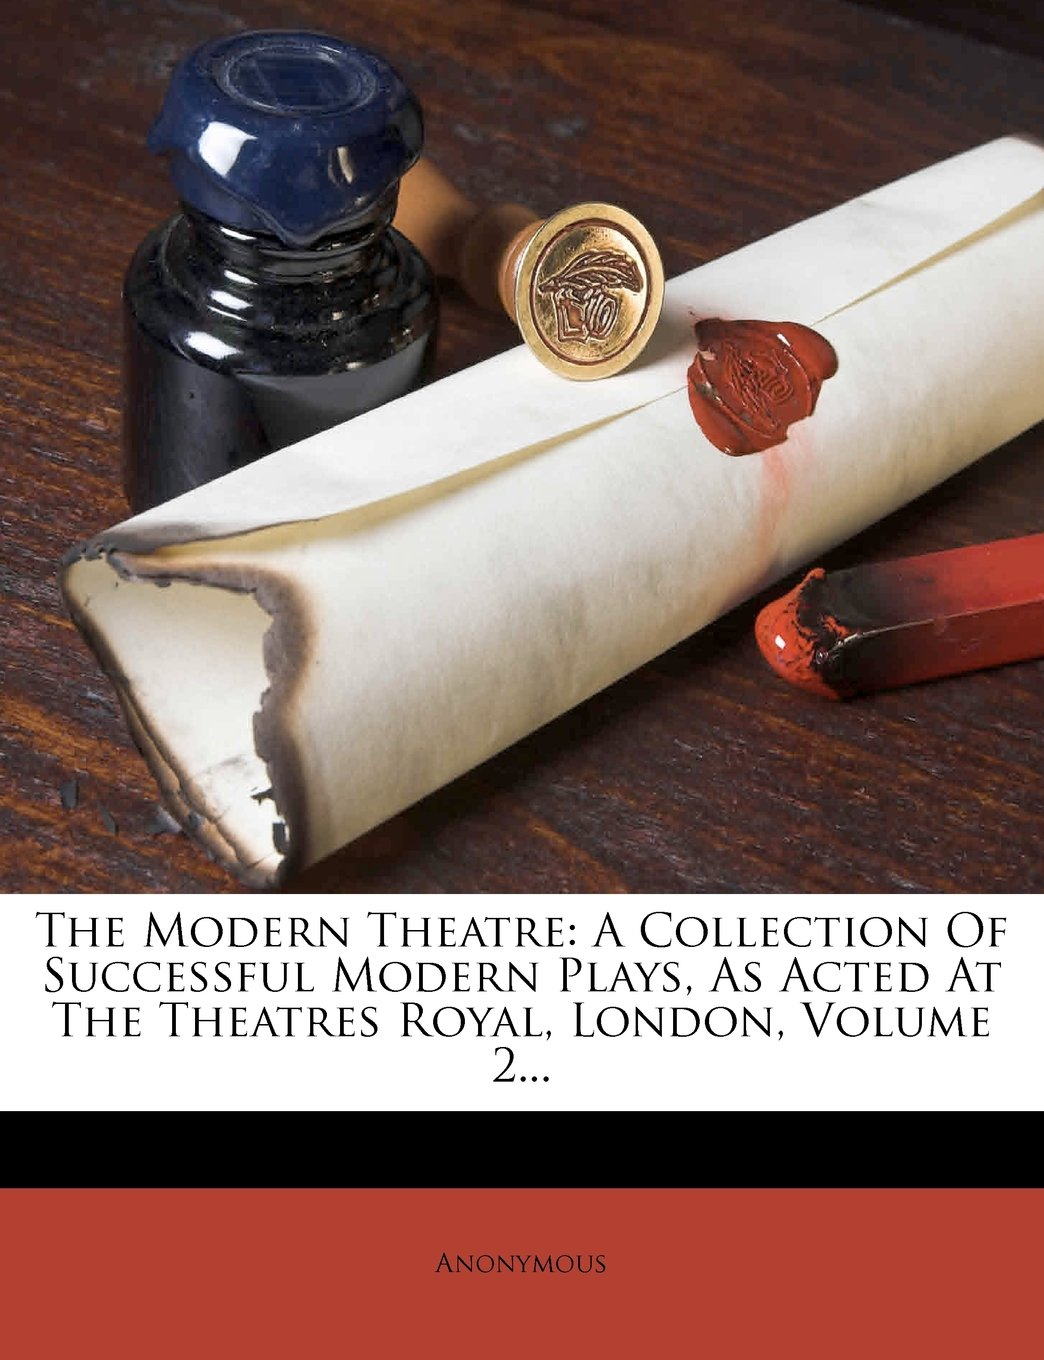 Download The Modern Theatre: A Collection Of Successful Modern Plays, As Acted At The Theatres Royal, London, Volume 2... ePub fb2 book